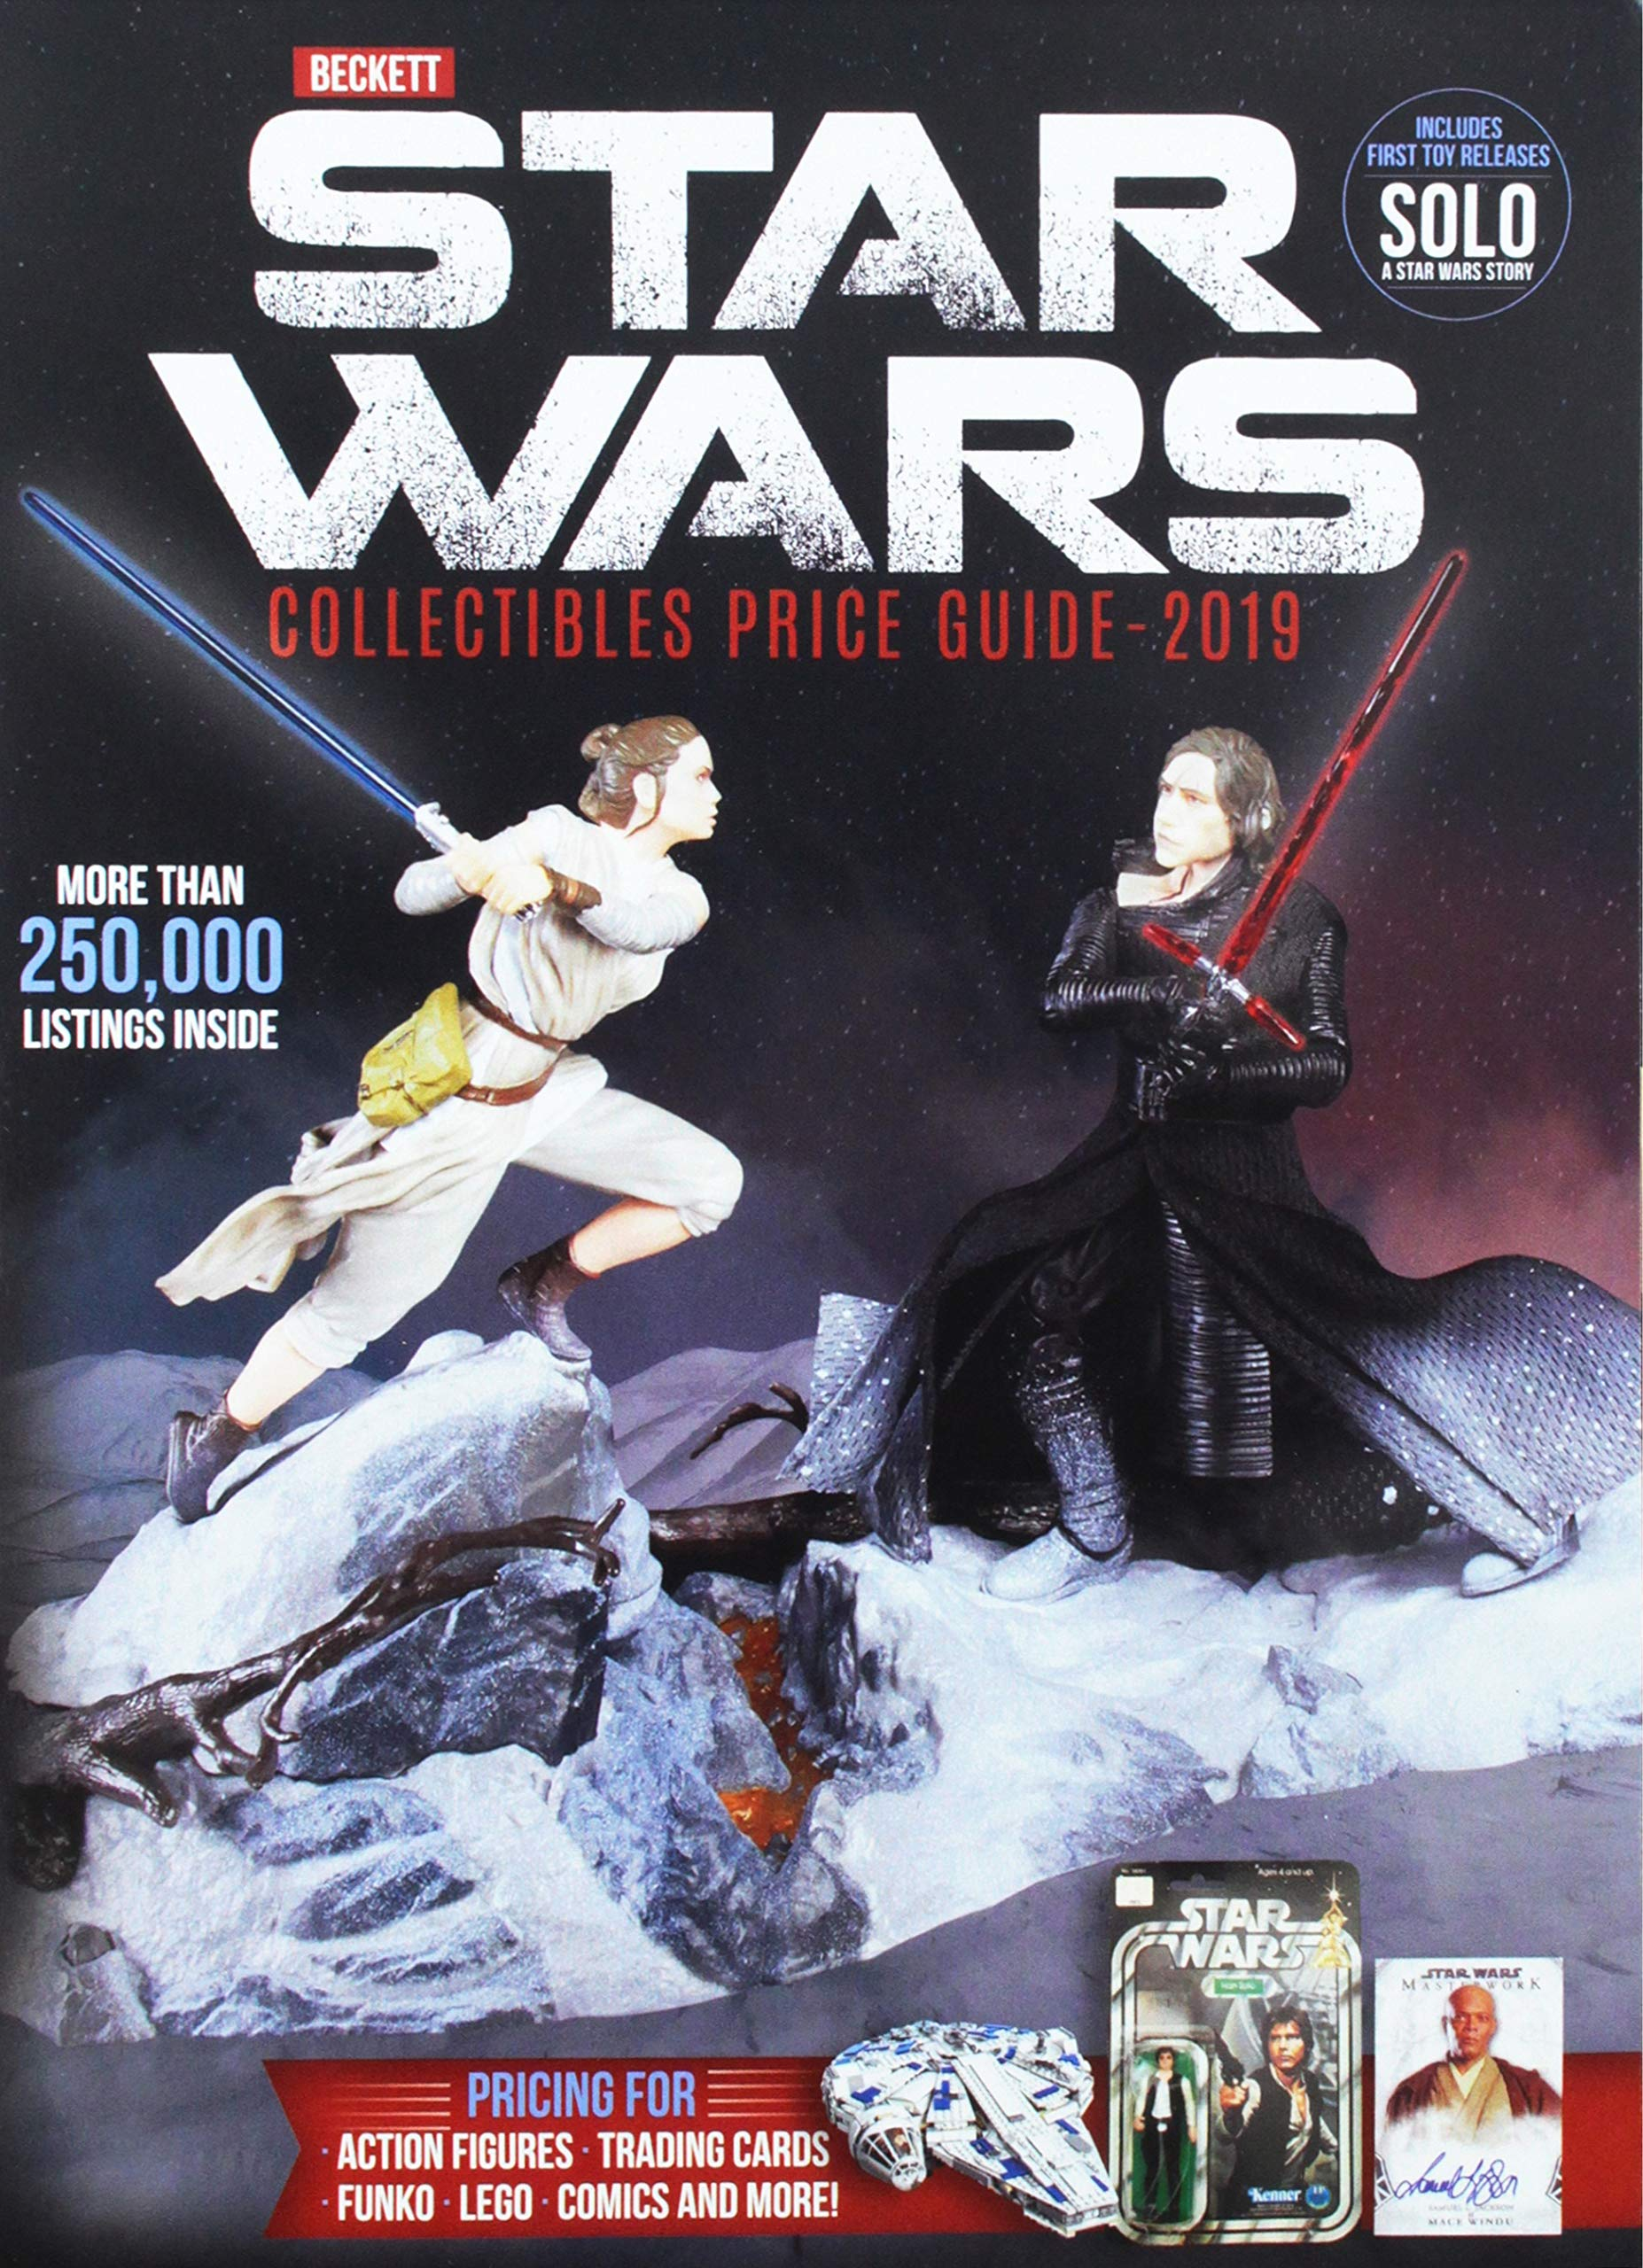 Beckett's Star Wars Collectibles Price Guide 2019